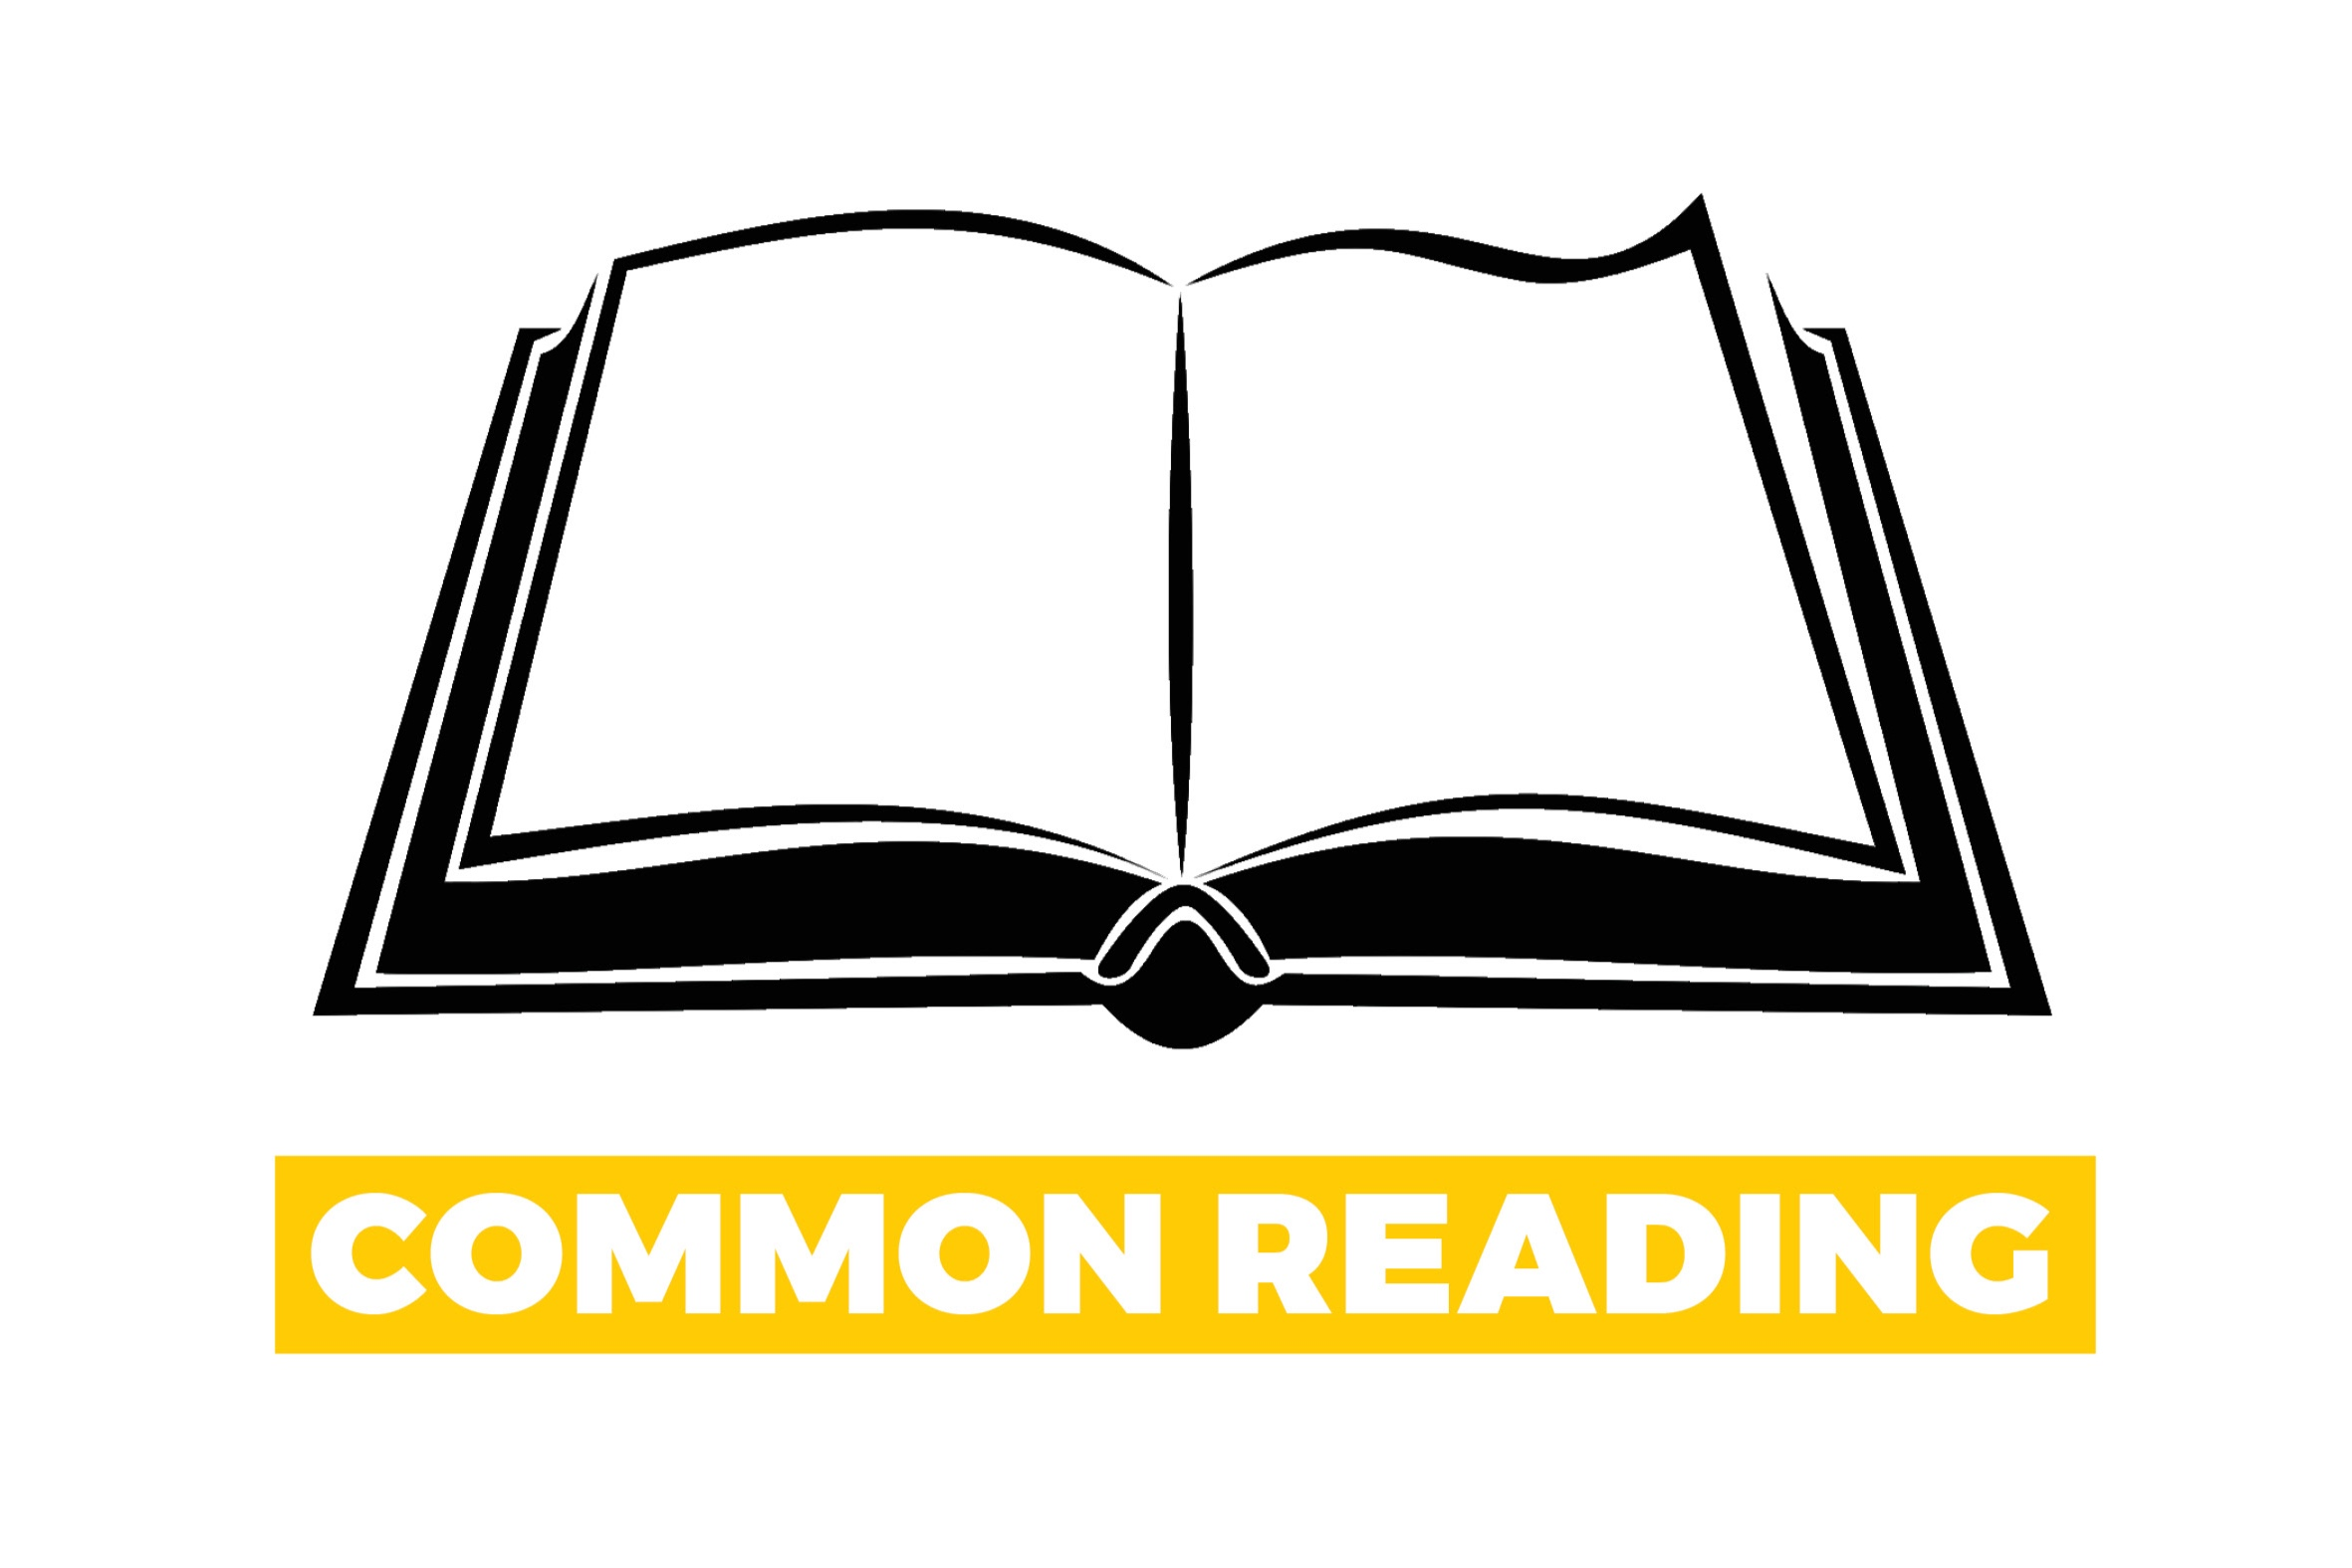 WEBSITE+LOGOS-common+reading.jpg